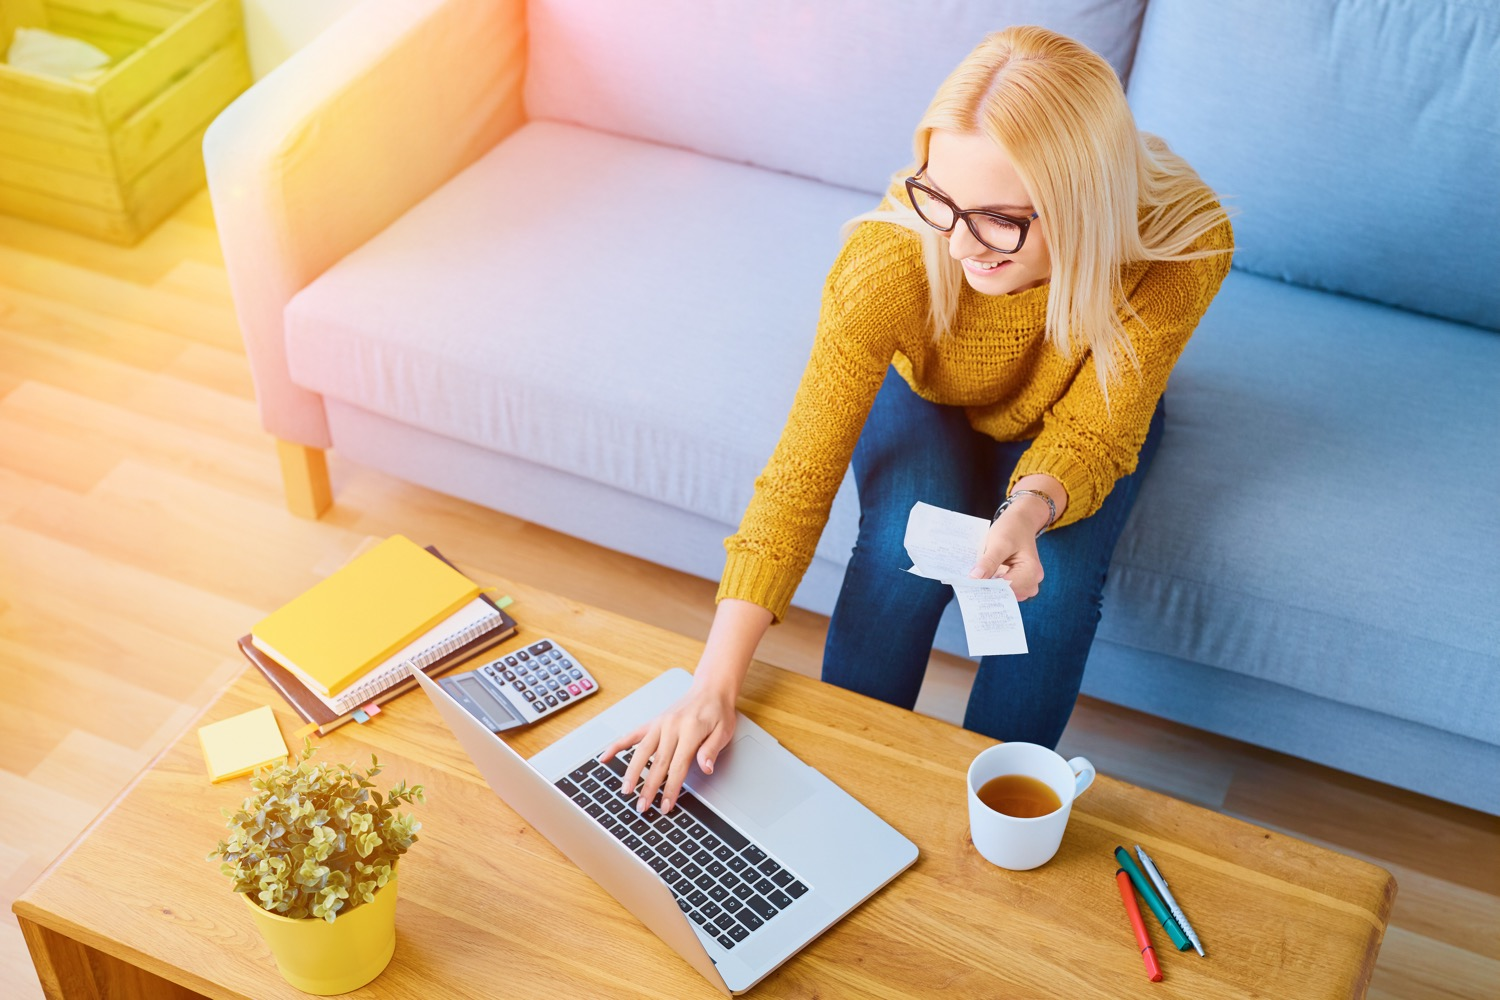 res_woman-paying-bills-on-laptop_adobestock_110854650